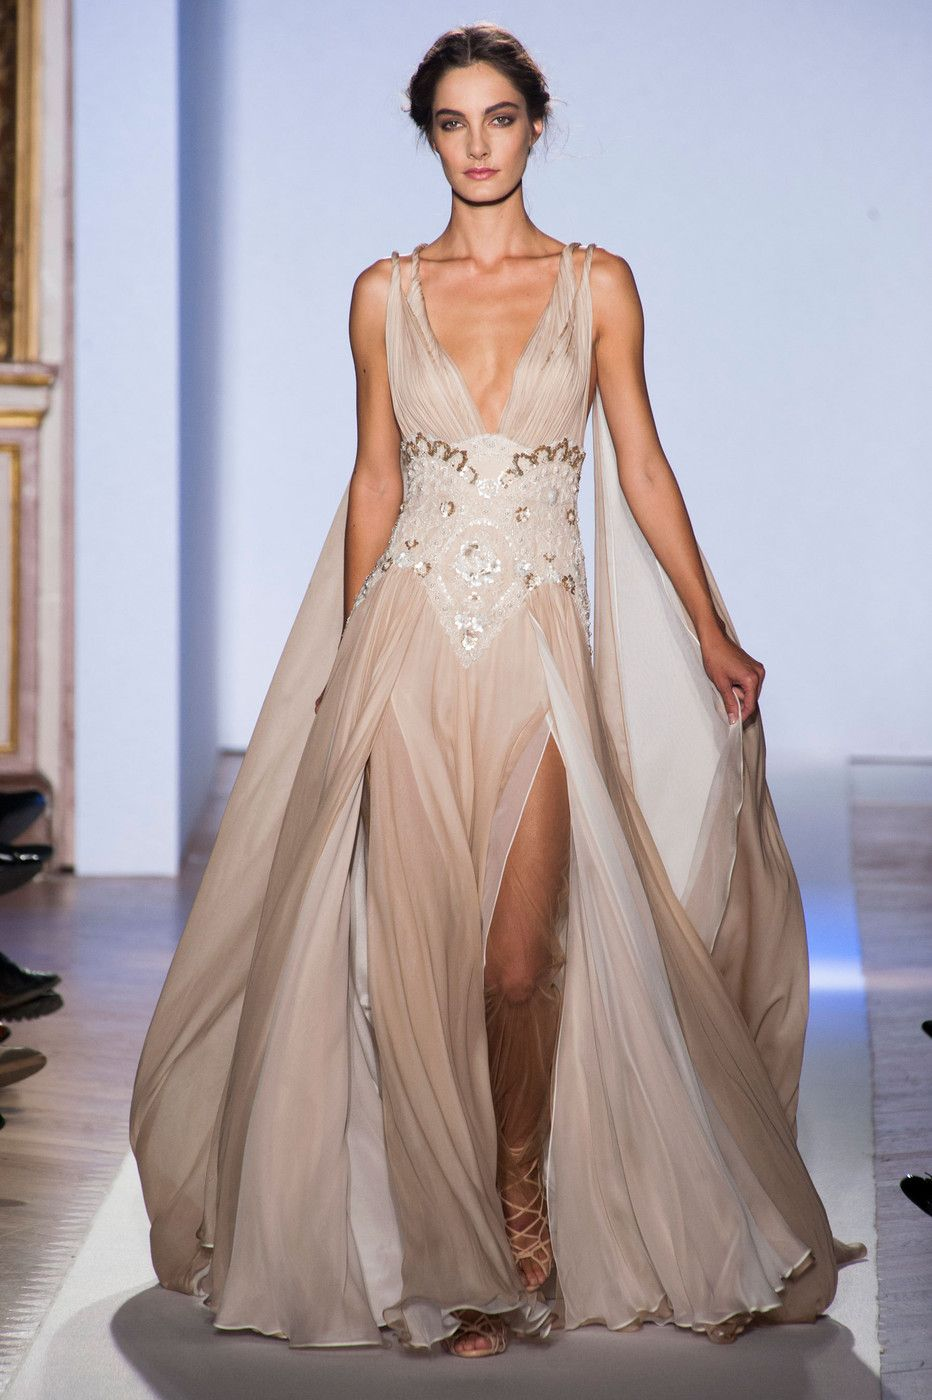 a26bf4bd4913 Zuhair Murad - Haute Couture - Spring 2013 - Spring 2013 s Most Beautiful  Haute Couture Gowns - StyleBistro